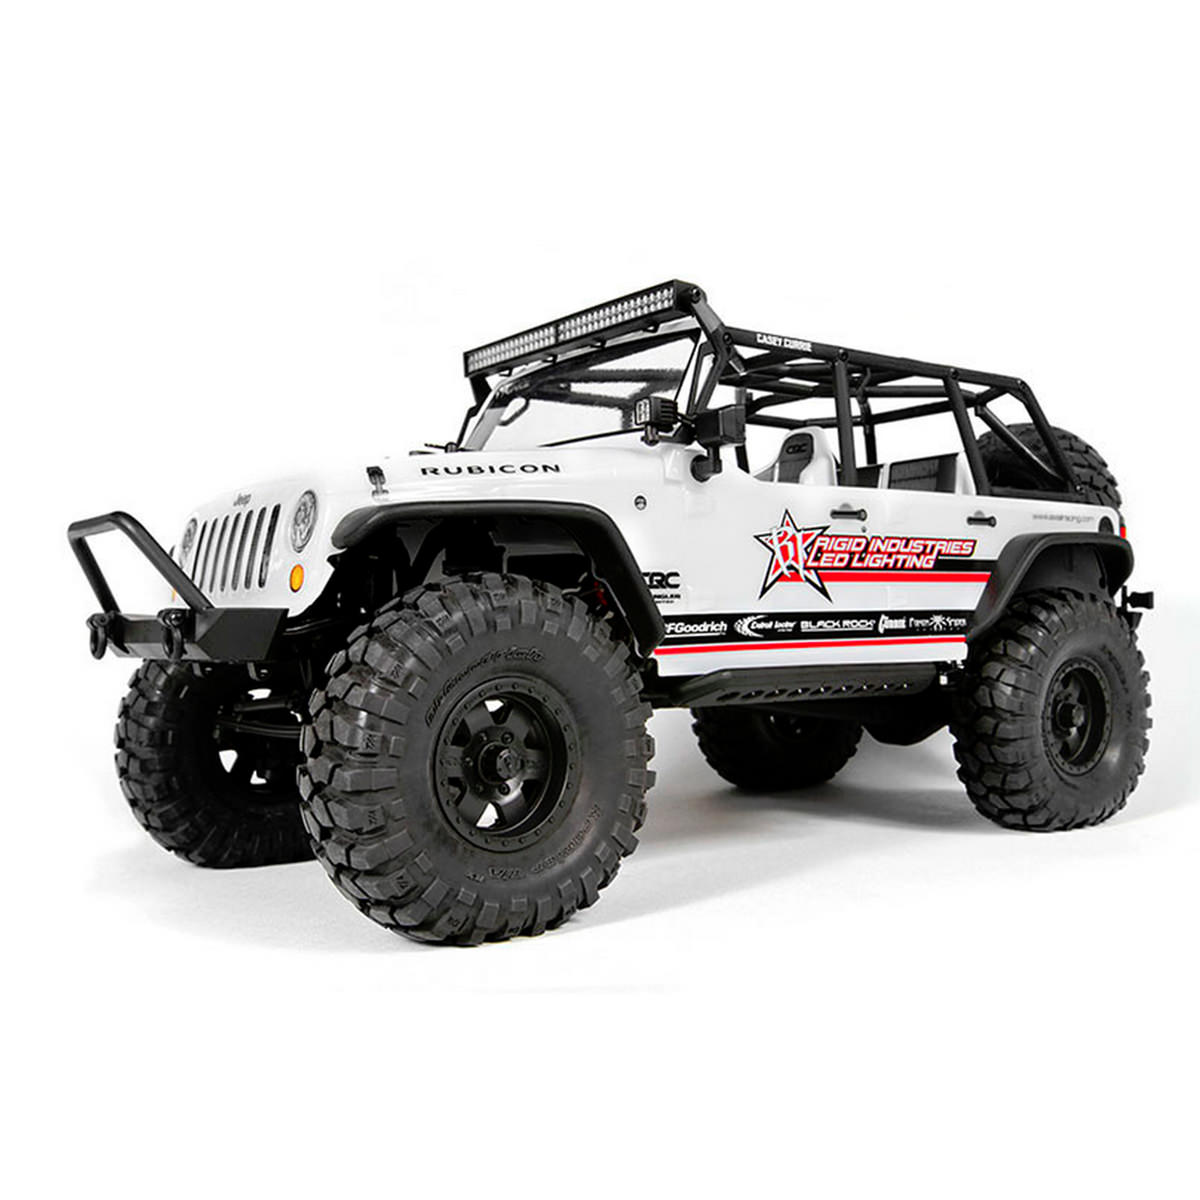 lego remote control monster truck with Axial 90035 Jeep Wrangler Rc Truck on  additionally The 4 Million Lamborghini Venenos Maiden Voyage also Axial 90035 Jeep Wrangler Rc Truck as well Product detail moreover Fisher Price Nickelodeon Blaze The Monster Machines Blaze Vehicle.